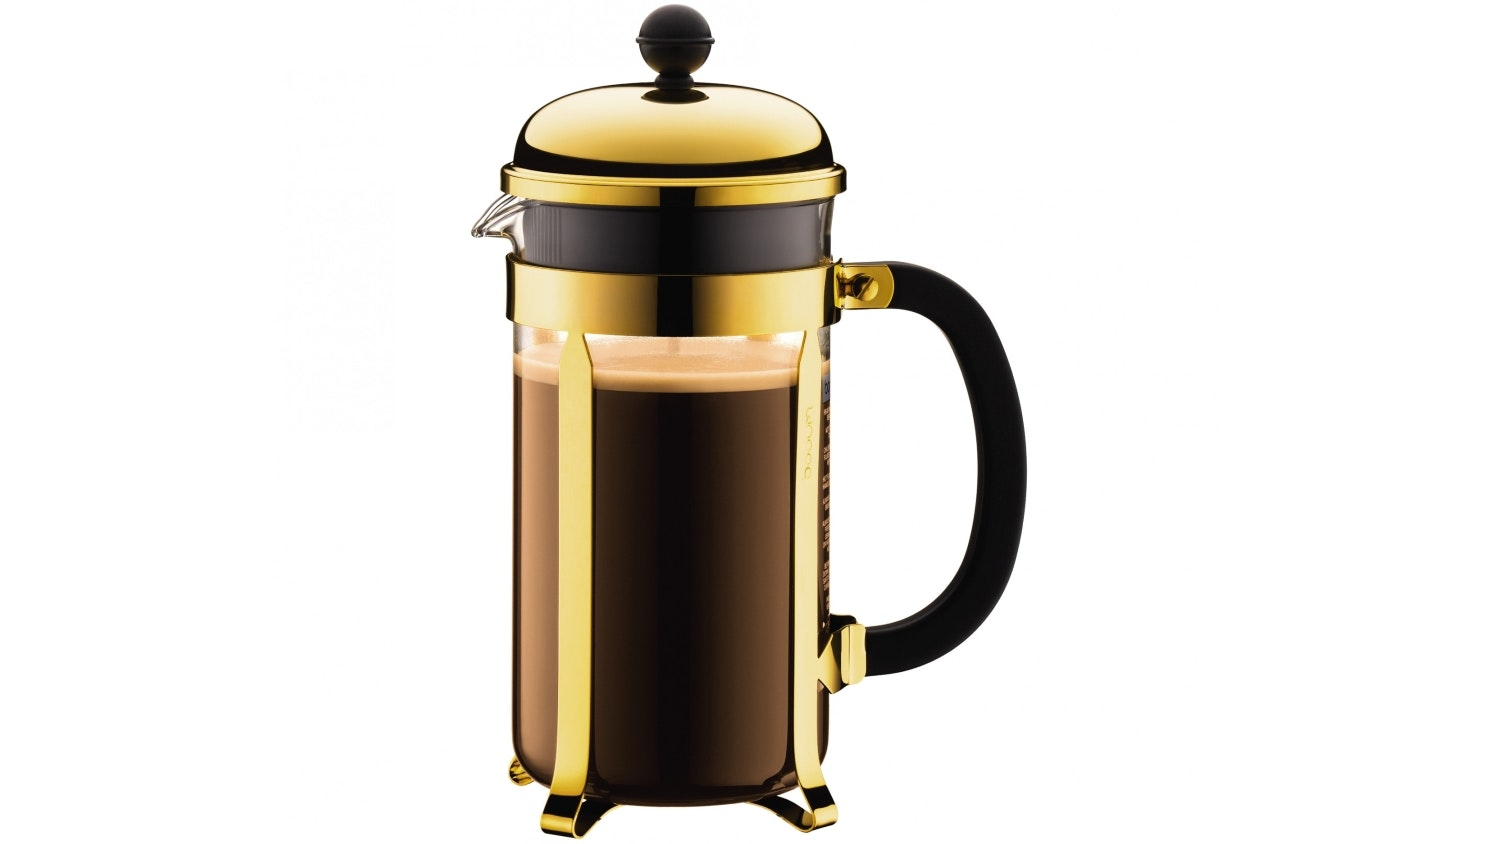 Bodum Chambord 3 Cup Coffee Maker - Gold